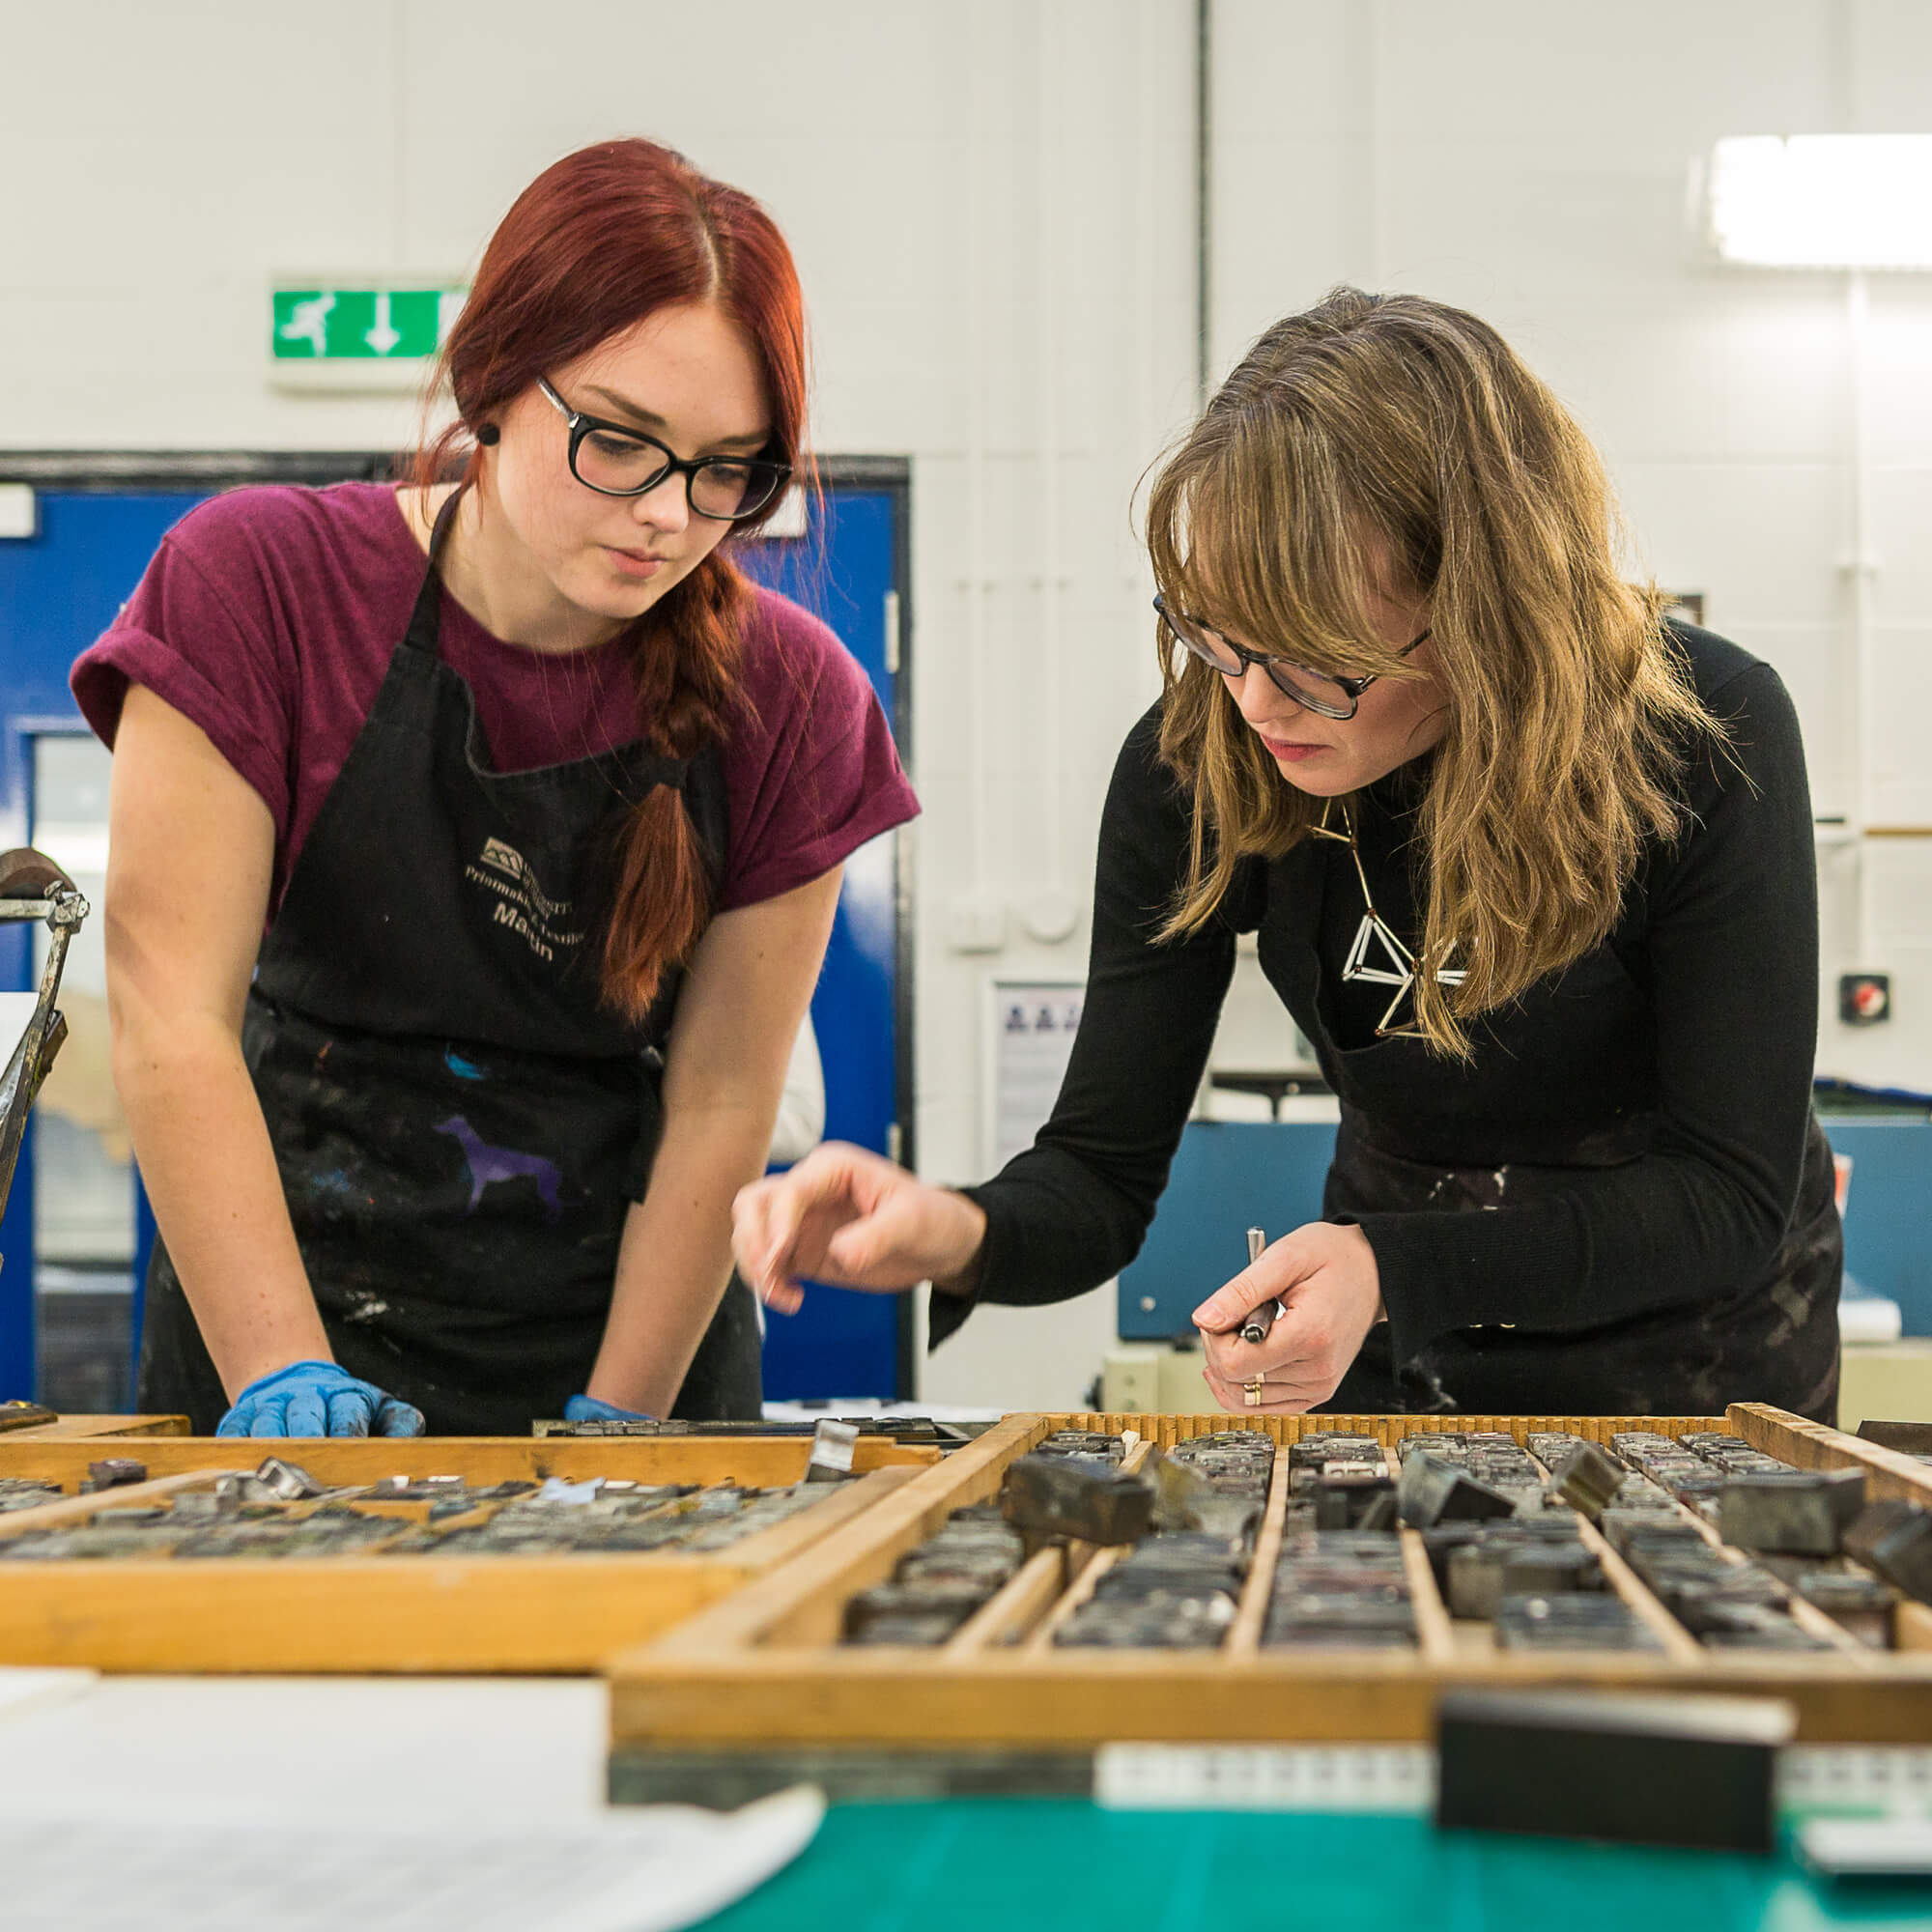 Two female students experiment with letter press tools